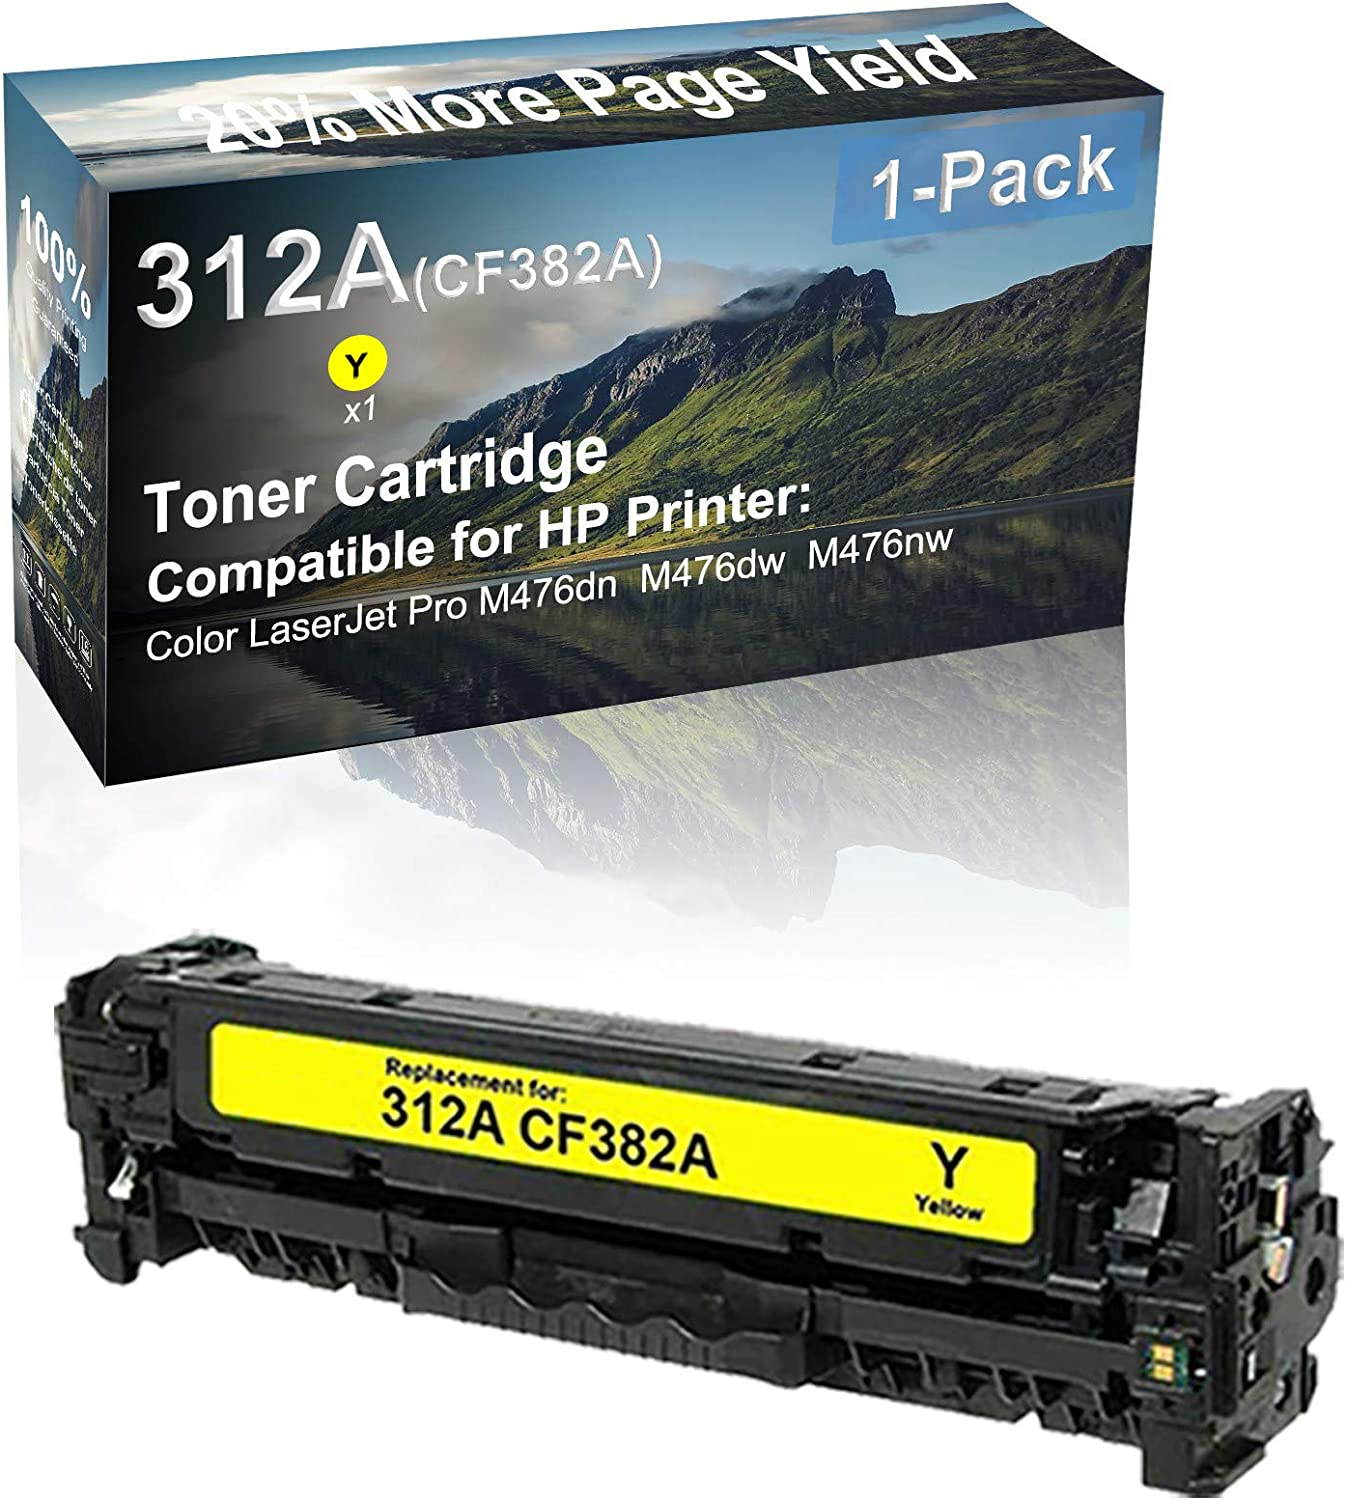 1-Pack (Yellow) Compatible High Capacity 312A (CF382A) Toner Cartridge use for HP M476dn M476dw M476nw Printer